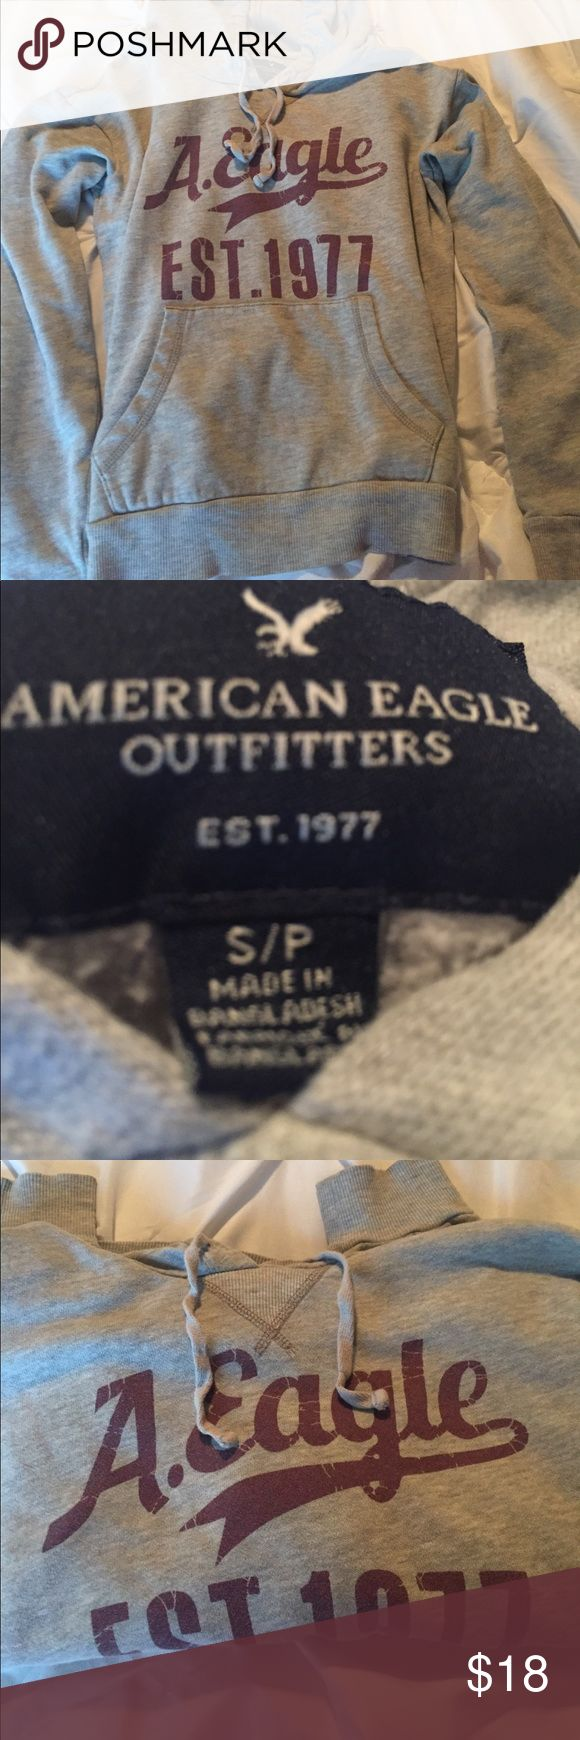 American Eagle Sweatshirt Super comfy sweatshirt to throw over some clothes. Great conditions as it started only warn a few times. Grey with maroon writing. American Eagle Outfitters Tops Sweatshirts & Hoodies